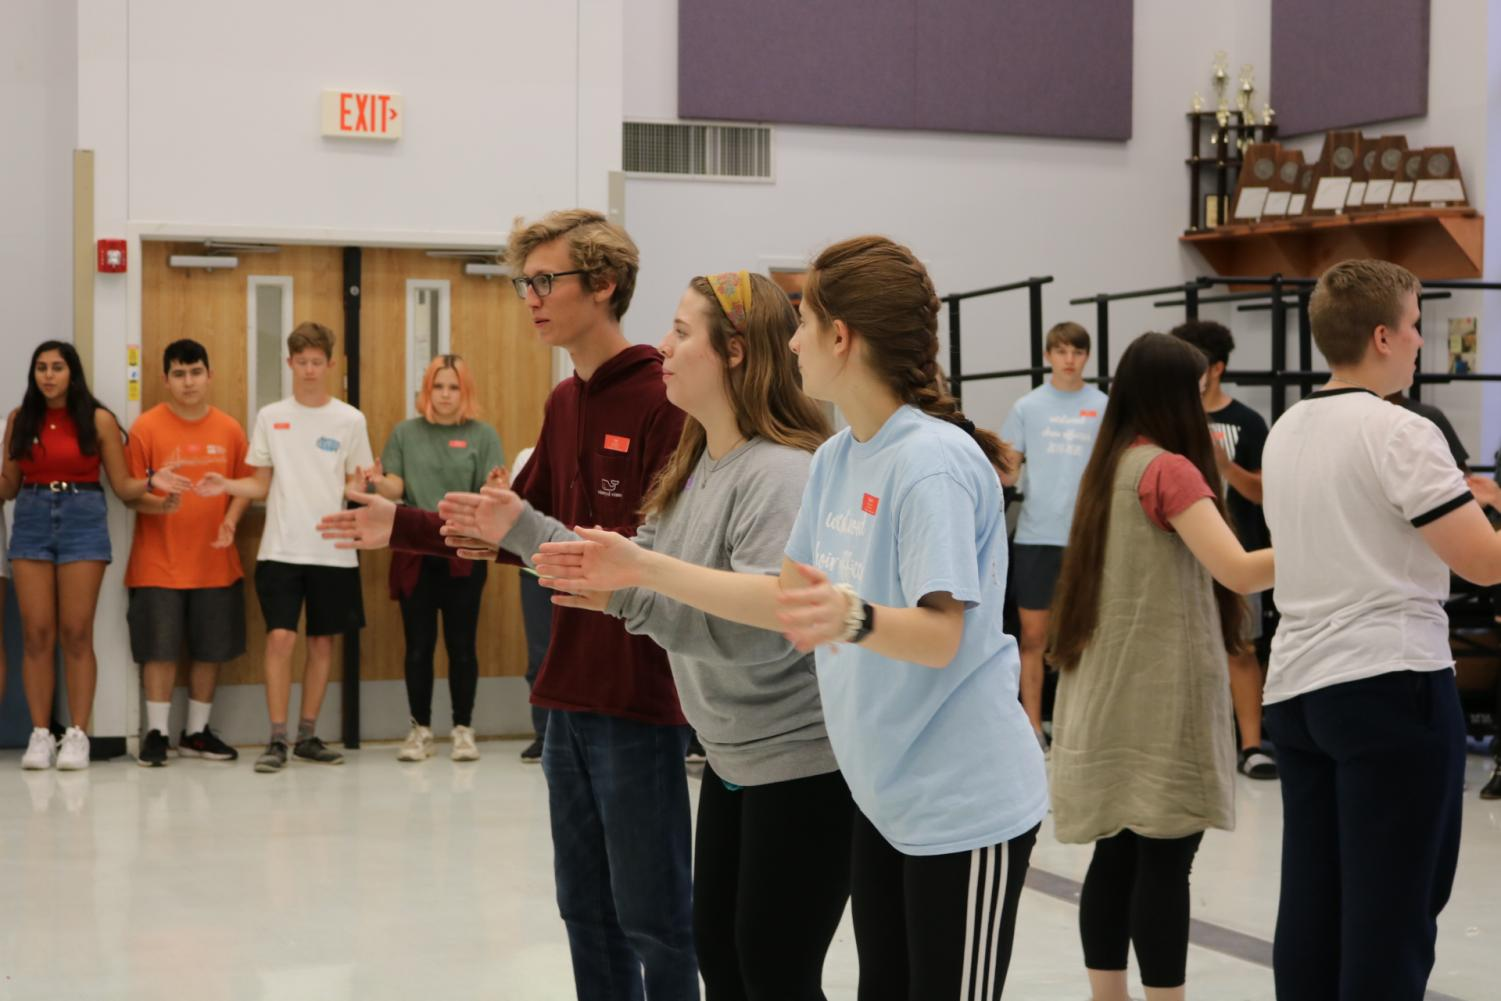 Ian+Webster+%2720%2C+Ashley+Howell+%2721%2C+and+Rachel+Rusch+%2720+help+lead+the+choir+in+an+icebreaker.+This+activity+helped+choir+members+bond+with+each+other.+%22The+game%2C+I+originally+learned+it+in+theatre+but+we%27ve+been+doing+it+at+choir+camp+since+my+freshman+year.+It%27s+just+a+really+fun+game+because+everyone+messes+up%2C+but+no+one+gets+singled+out%2C%22+Rusch+said.